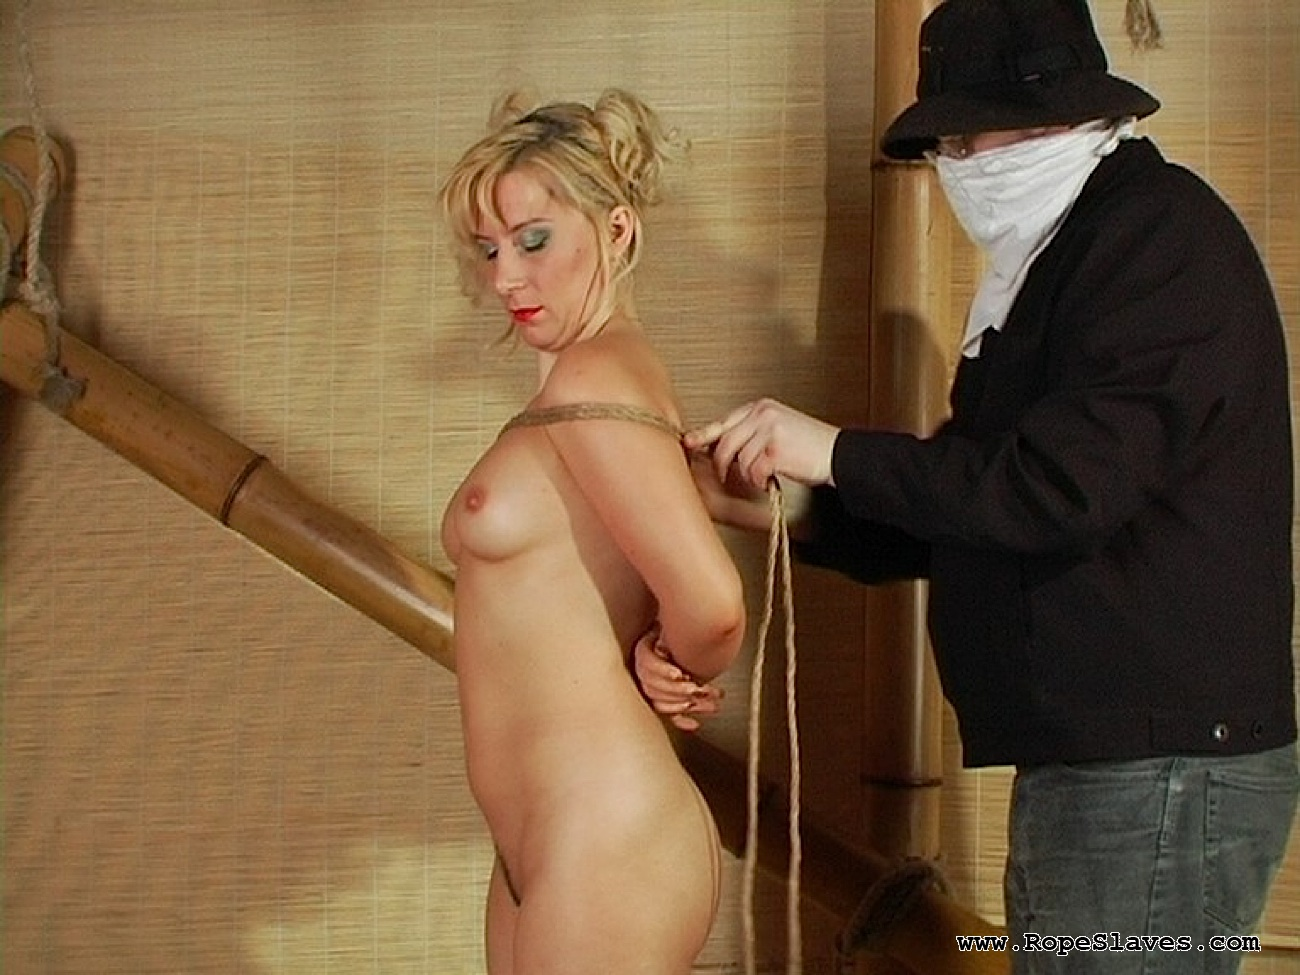 01 Submissive Sex Slave Inspection - Obedient Blond Bound